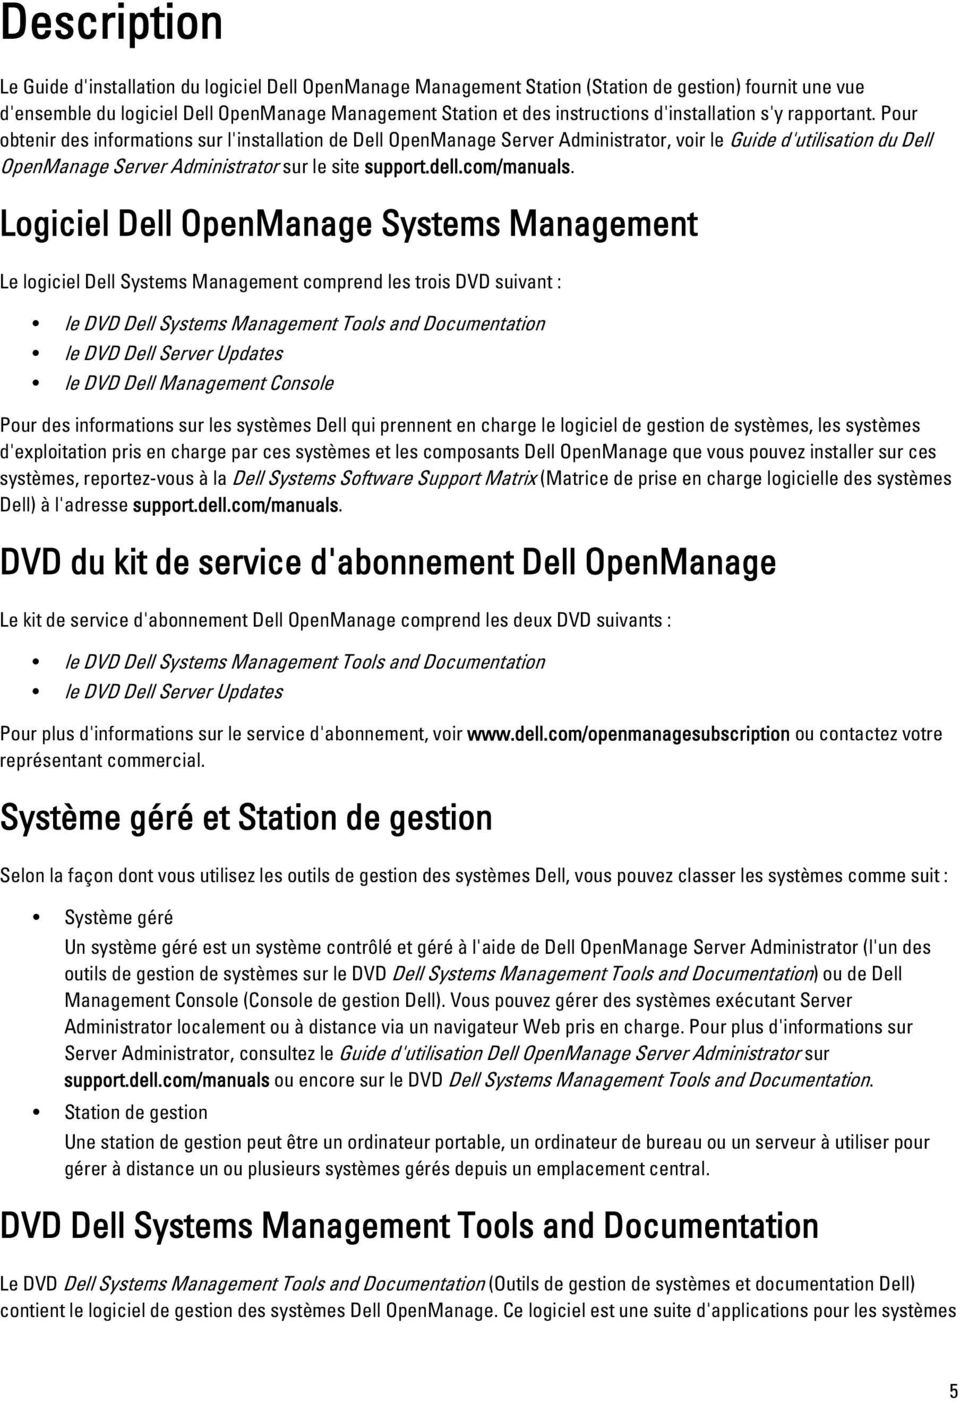 Pour obtenir des informations sur l'installation de Dell OpenManage Server Administrator, voir le Guide d'utilisation du Dell OpenManage Server Administrator sur le site support.dell.com/manuals.